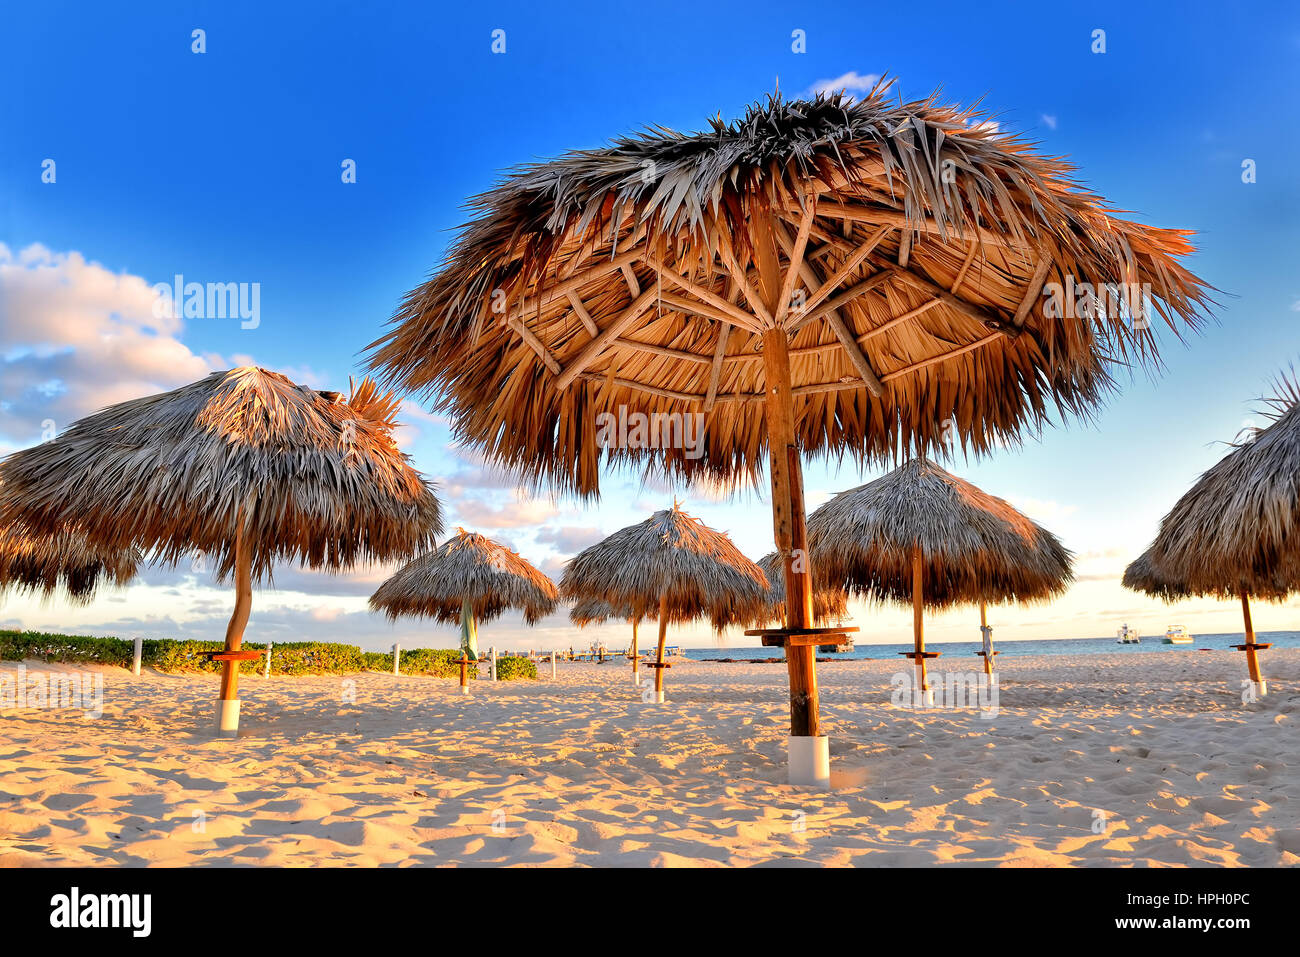 Amazing tropical holidays. Sun umbrellas on the beach. Tropical paradise. Caribbean. Punta Cana. Dominican Republic - Stock Image